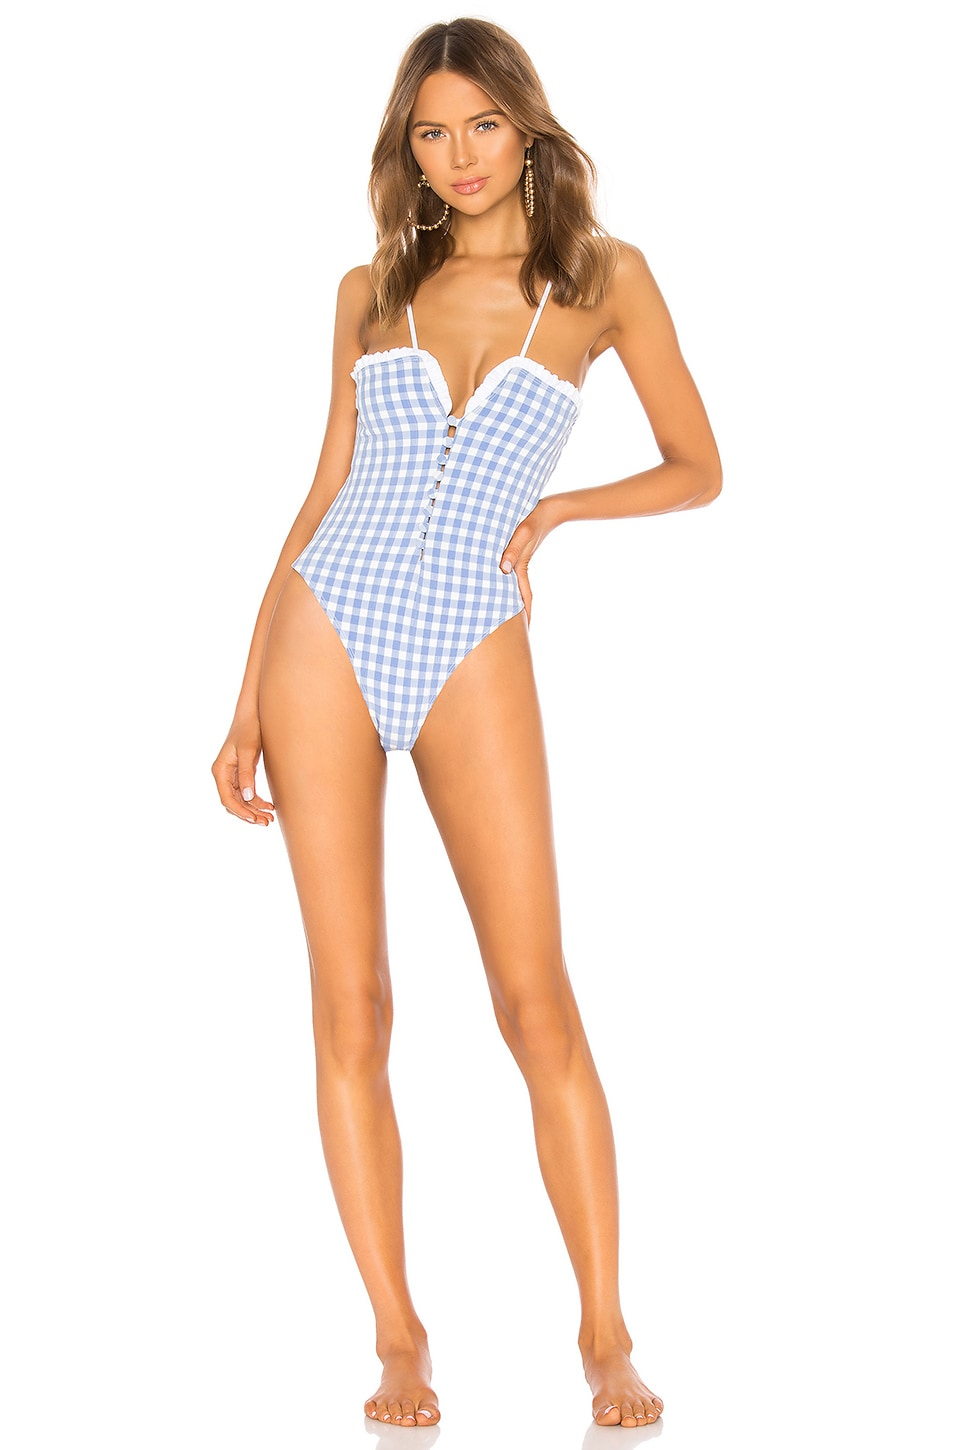 Tularosa Lakin One Piece in Periwinkle Gingham